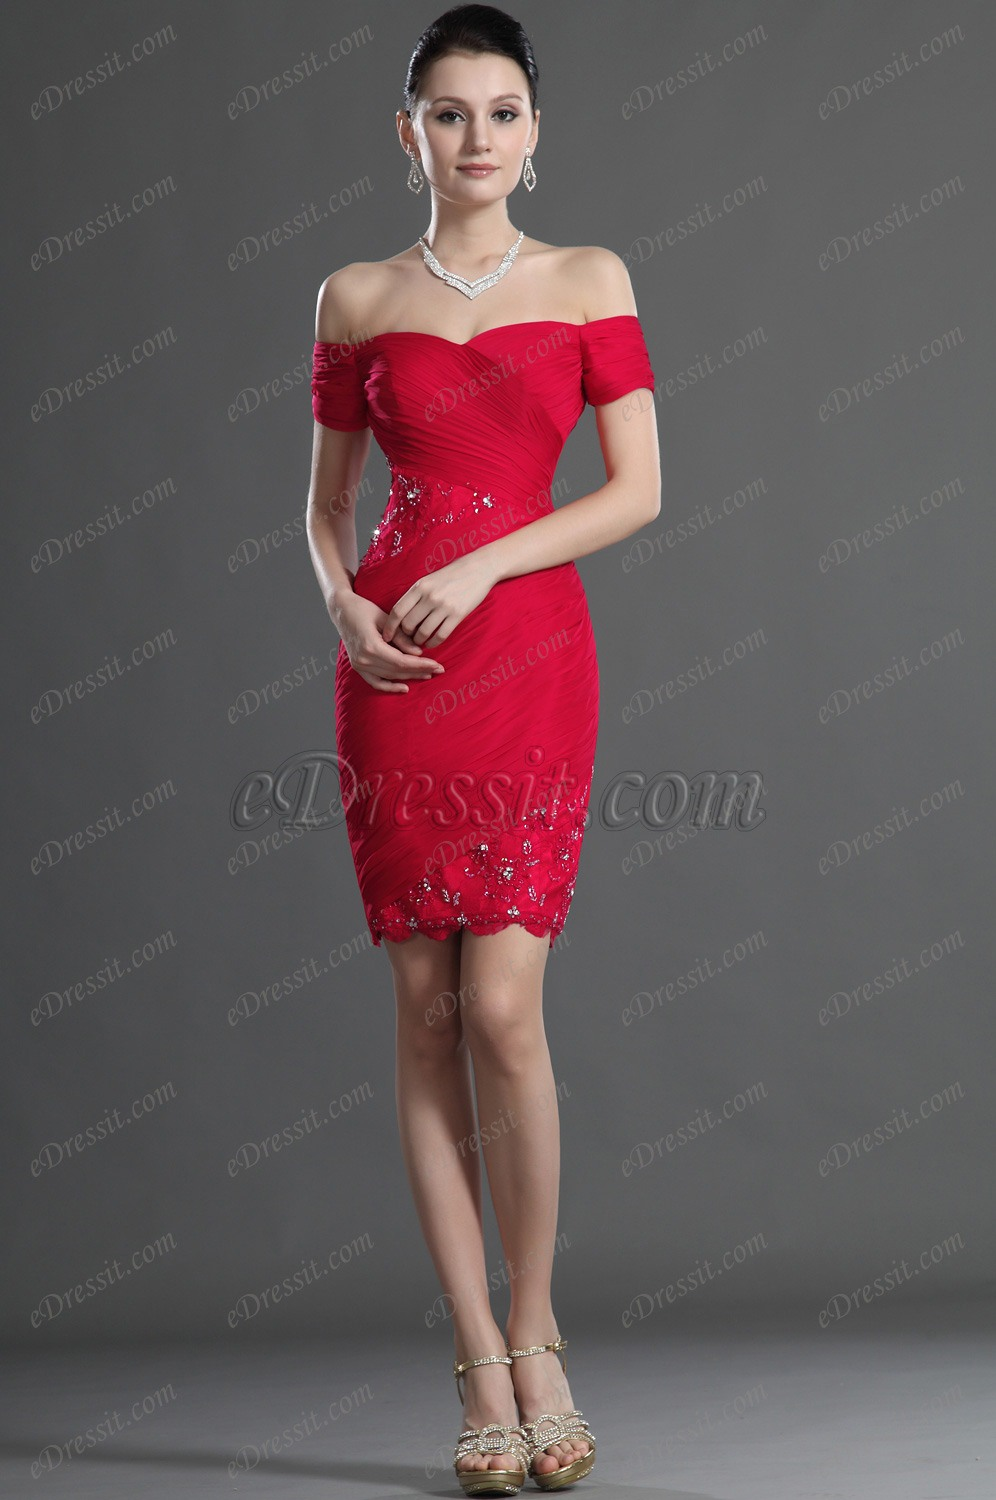 Edressit Red Off Shoulder Lace Cocktail Dress Party Dress